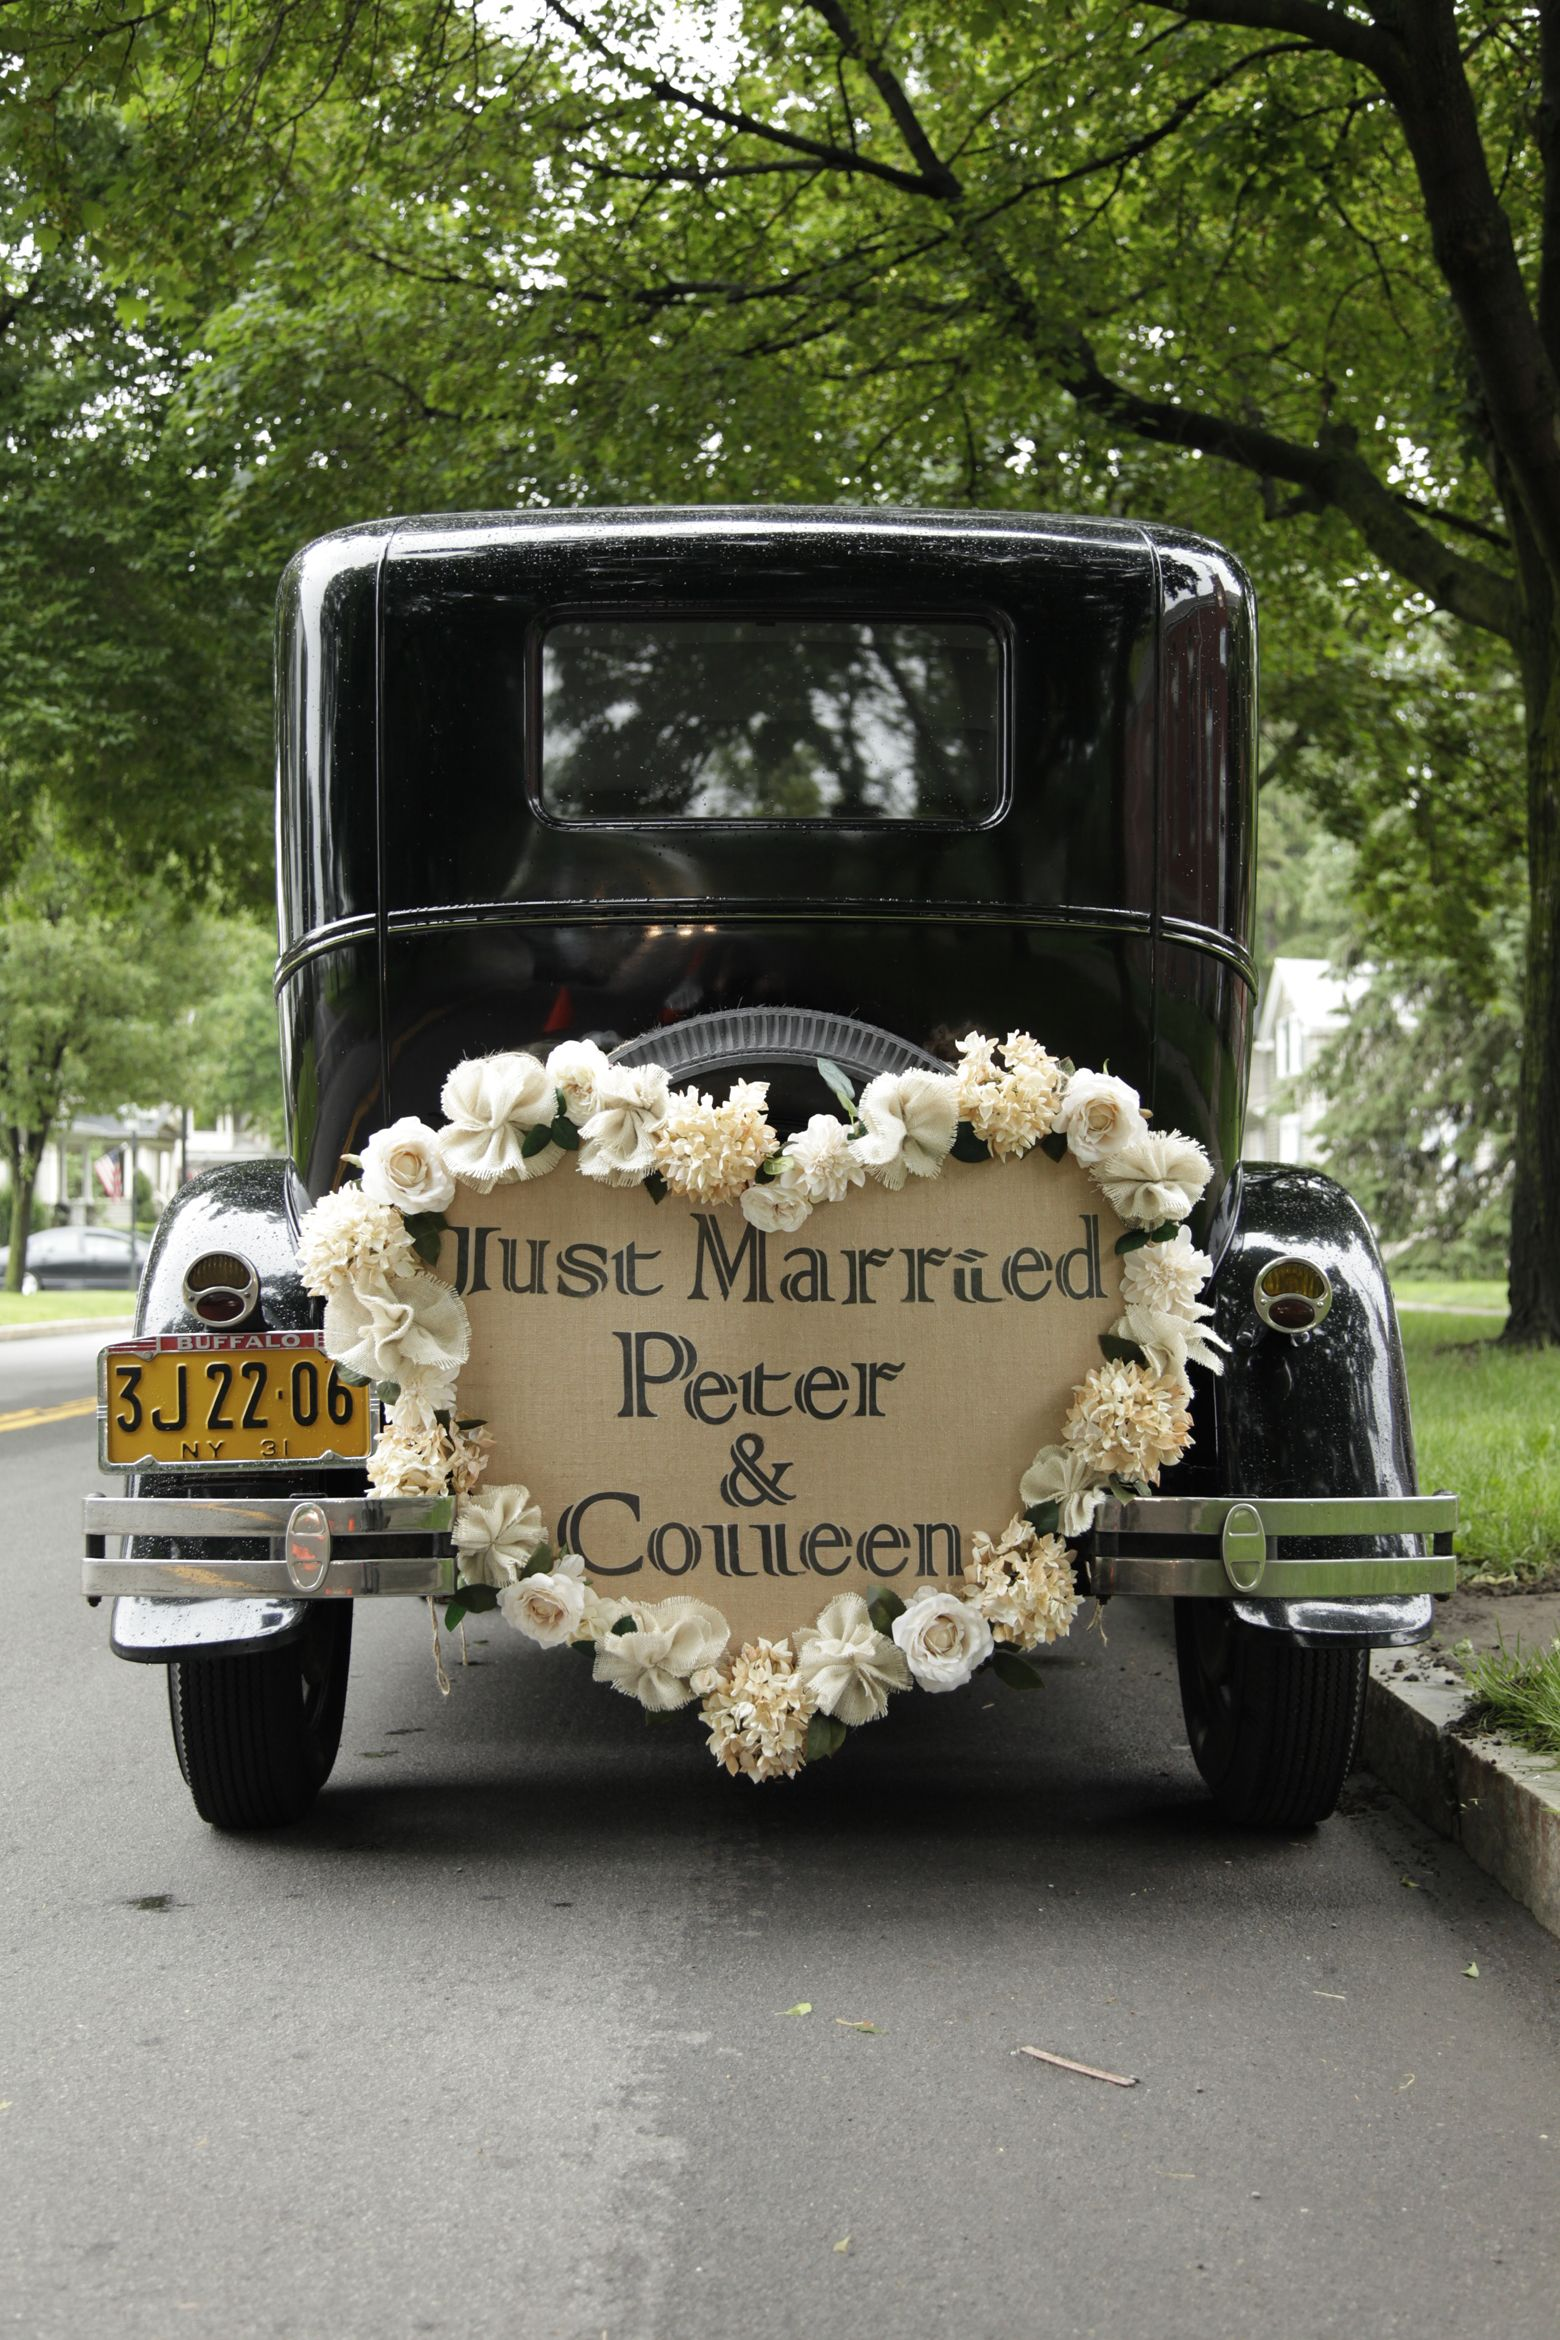 Wedding decorations car  Our Getaway Car  Wedding Car Decorations  Pinterest  Wedding car